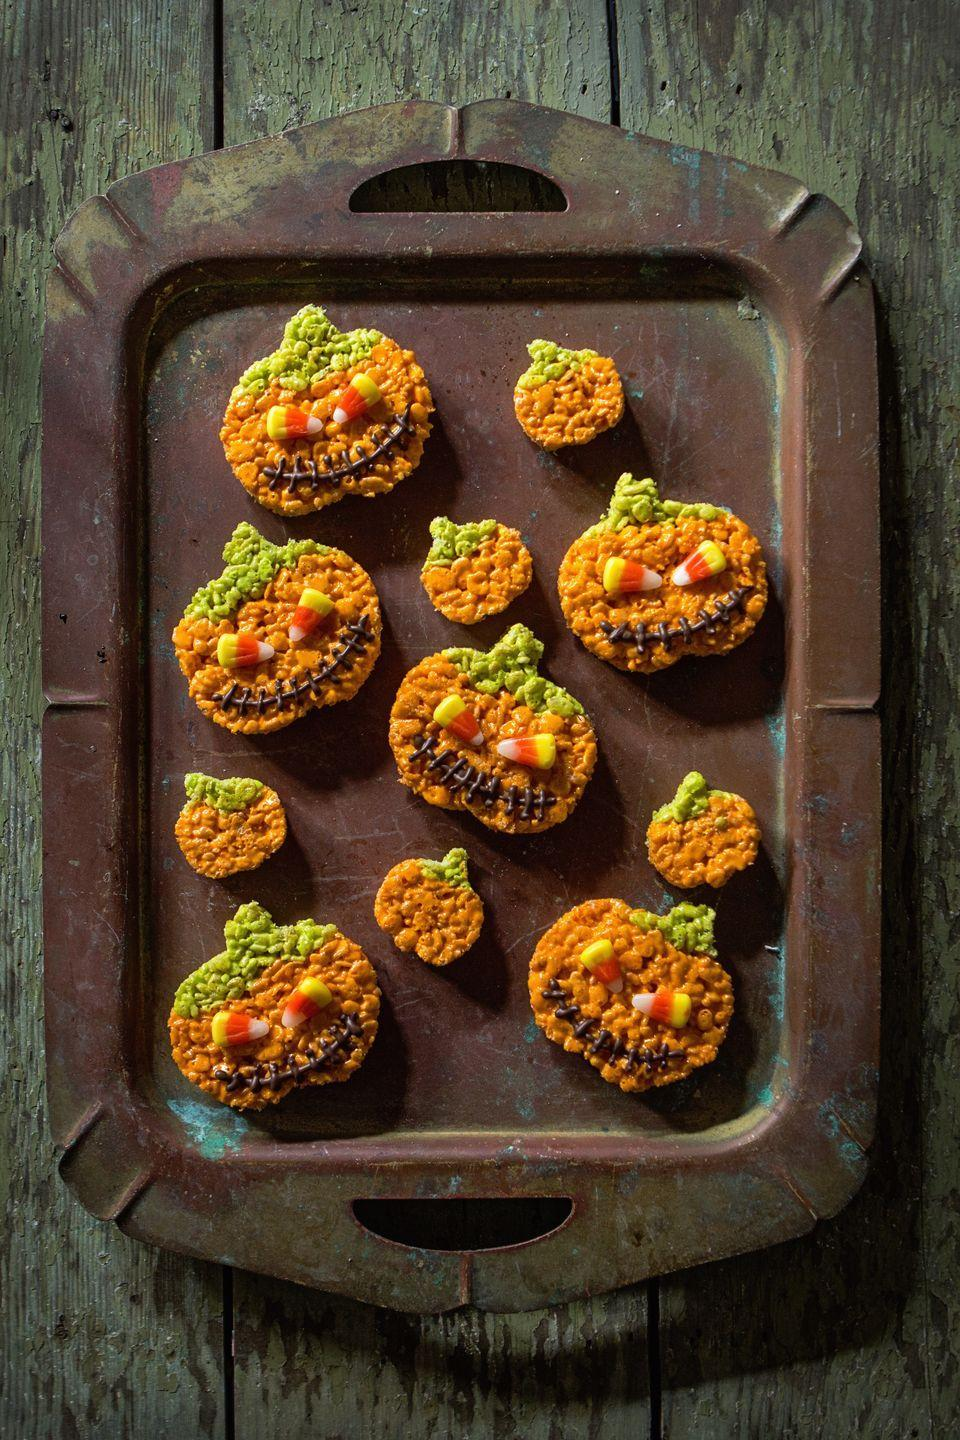 "<p>How's this for your pumpkin carving skills?</p><p>Get the recipe from <a href=""https://www.delish.com/cooking/recipe-ideas/recipes/a43936/jack-o-lantern-rice-krispies-recipe/"" rel=""nofollow noopener"" target=""_blank"" data-ylk=""slk:Delish"" class=""link rapid-noclick-resp"">Delish</a>.</p>"